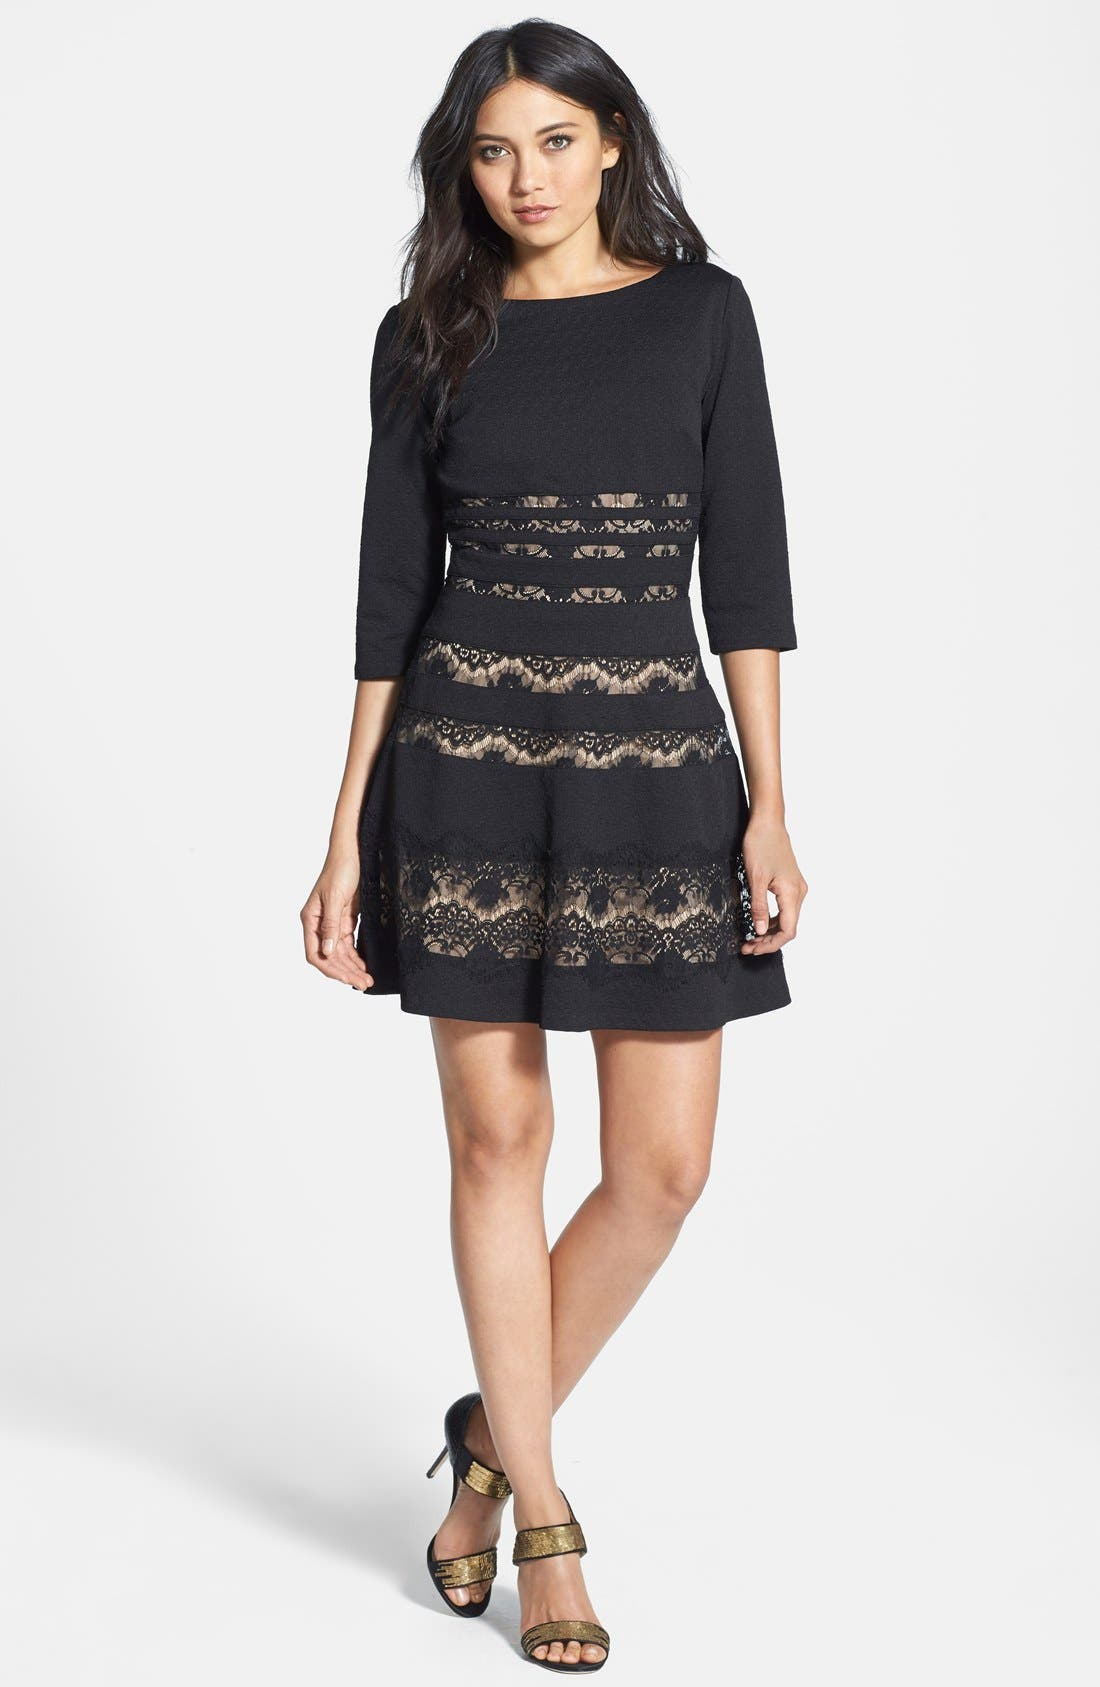 Main Image - ERIN erin fetherston 'Millie' Lace Inset Ponte Fit & Flare Dress